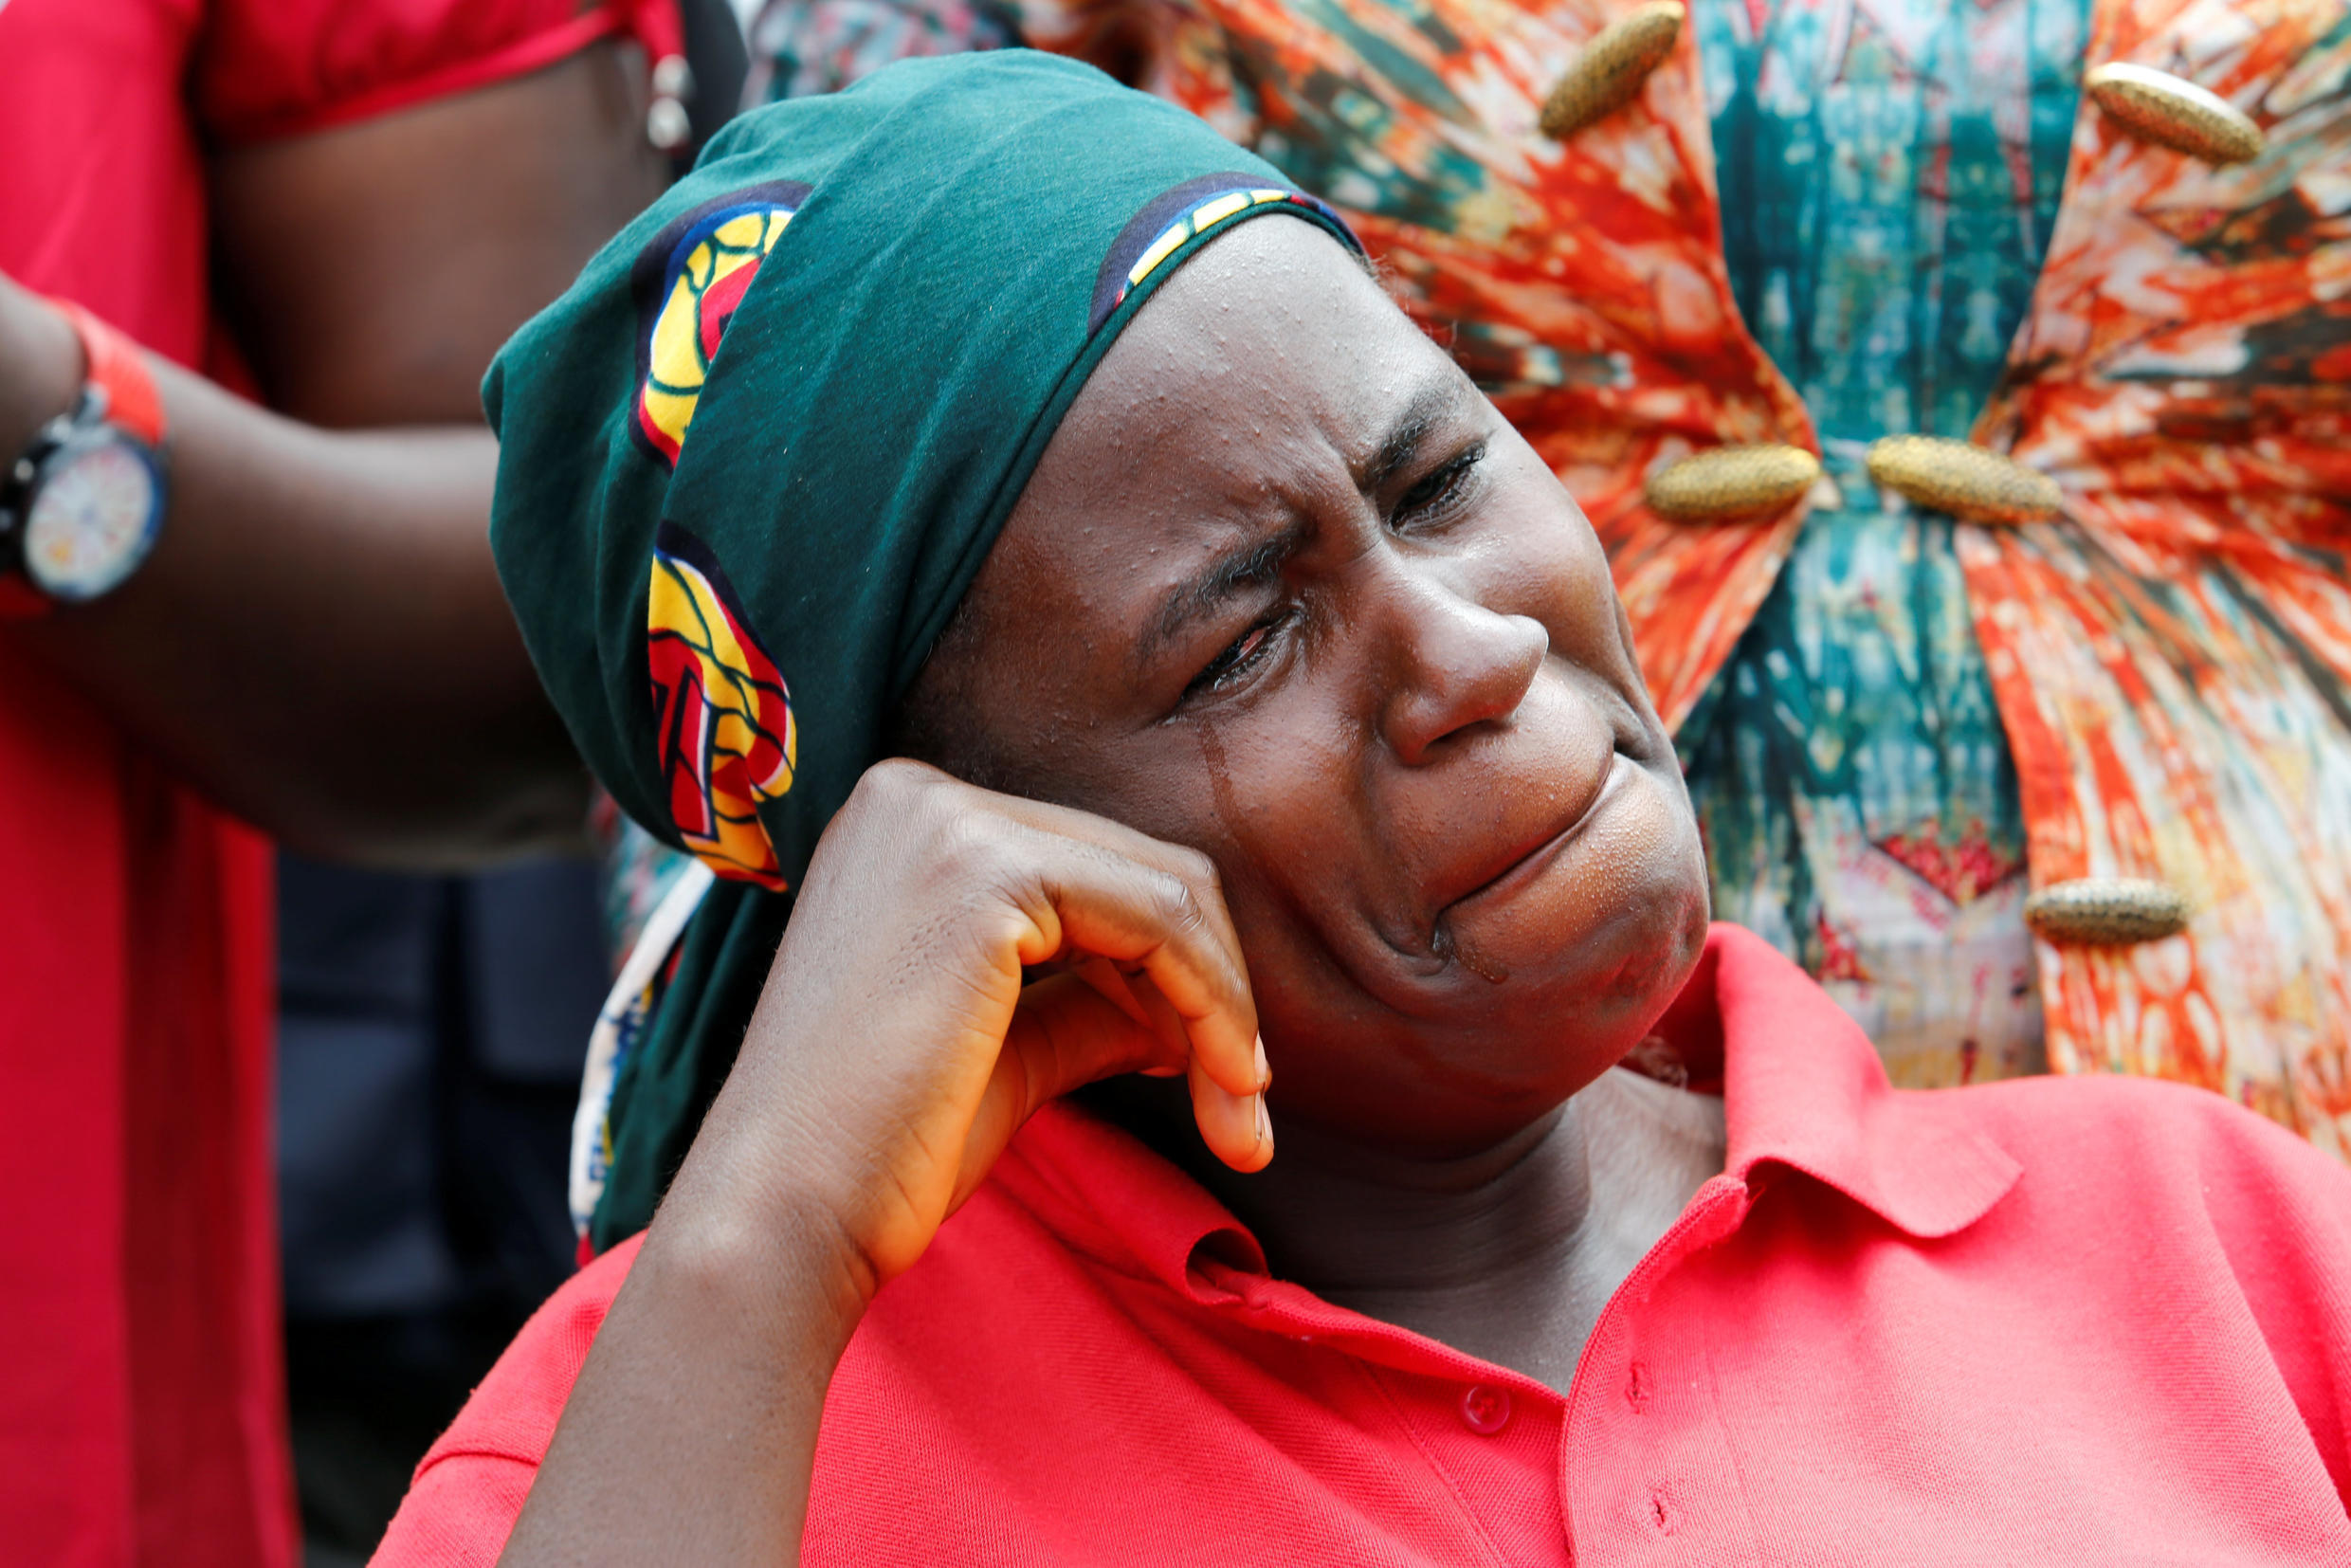 A parent of one of the abducted Chibok school girls cries after the police prevented the parents access to see President Muhammadu Buhari during a rally in Abuja, Nigeria August 25, 2016.